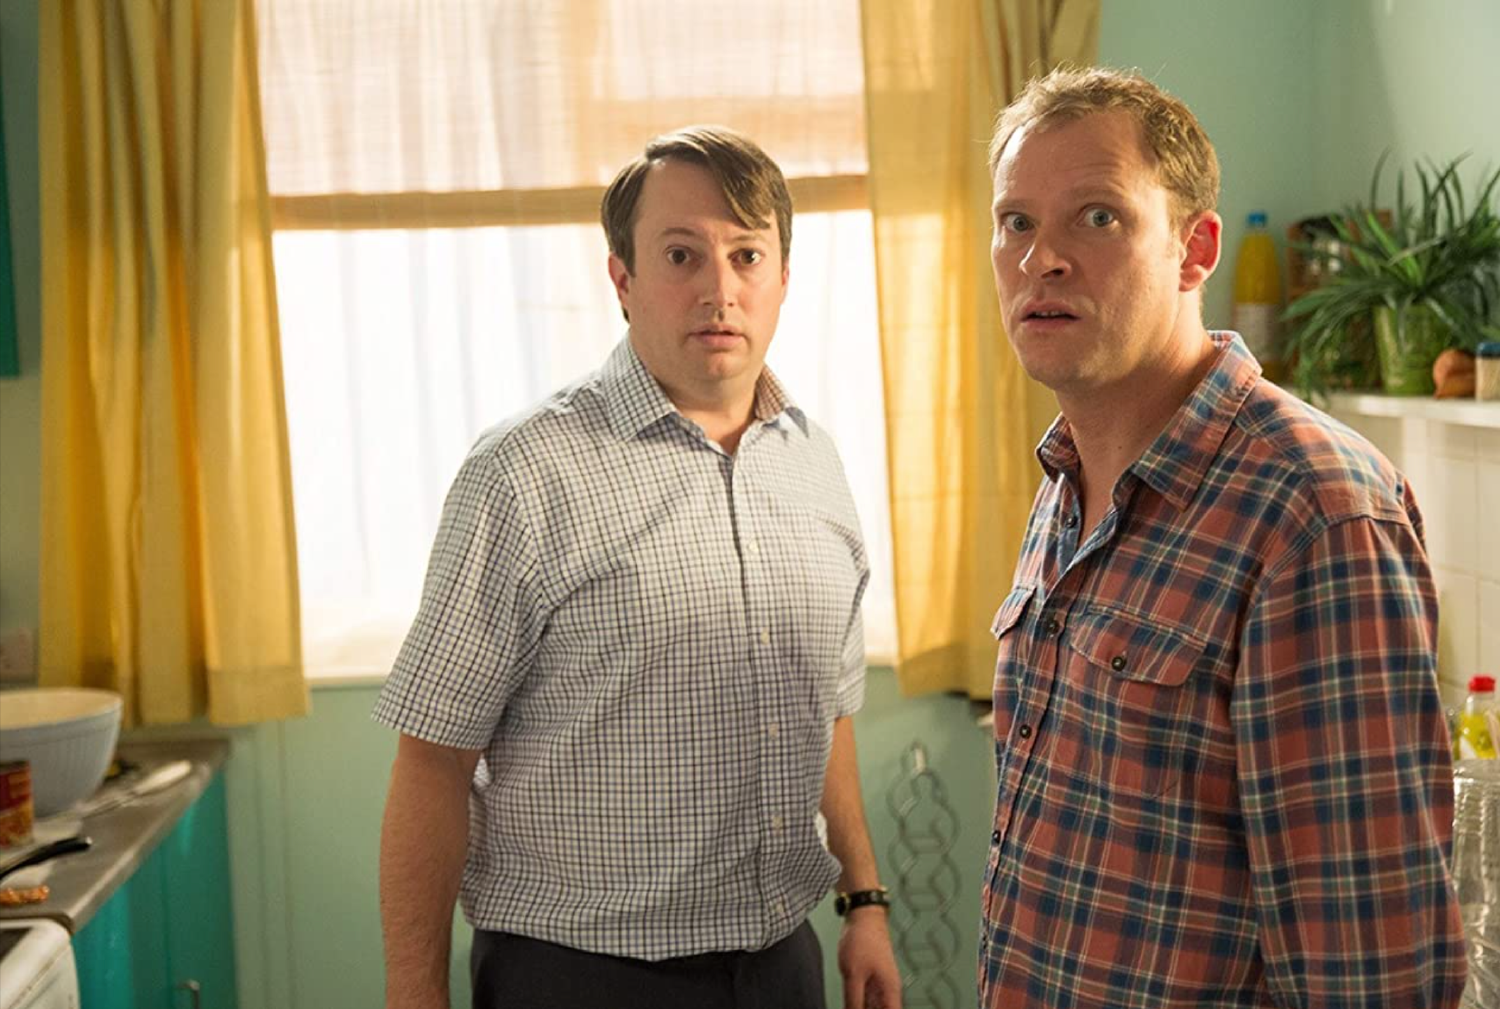 The Peep Show Appeal: How a sitcom captured a generation